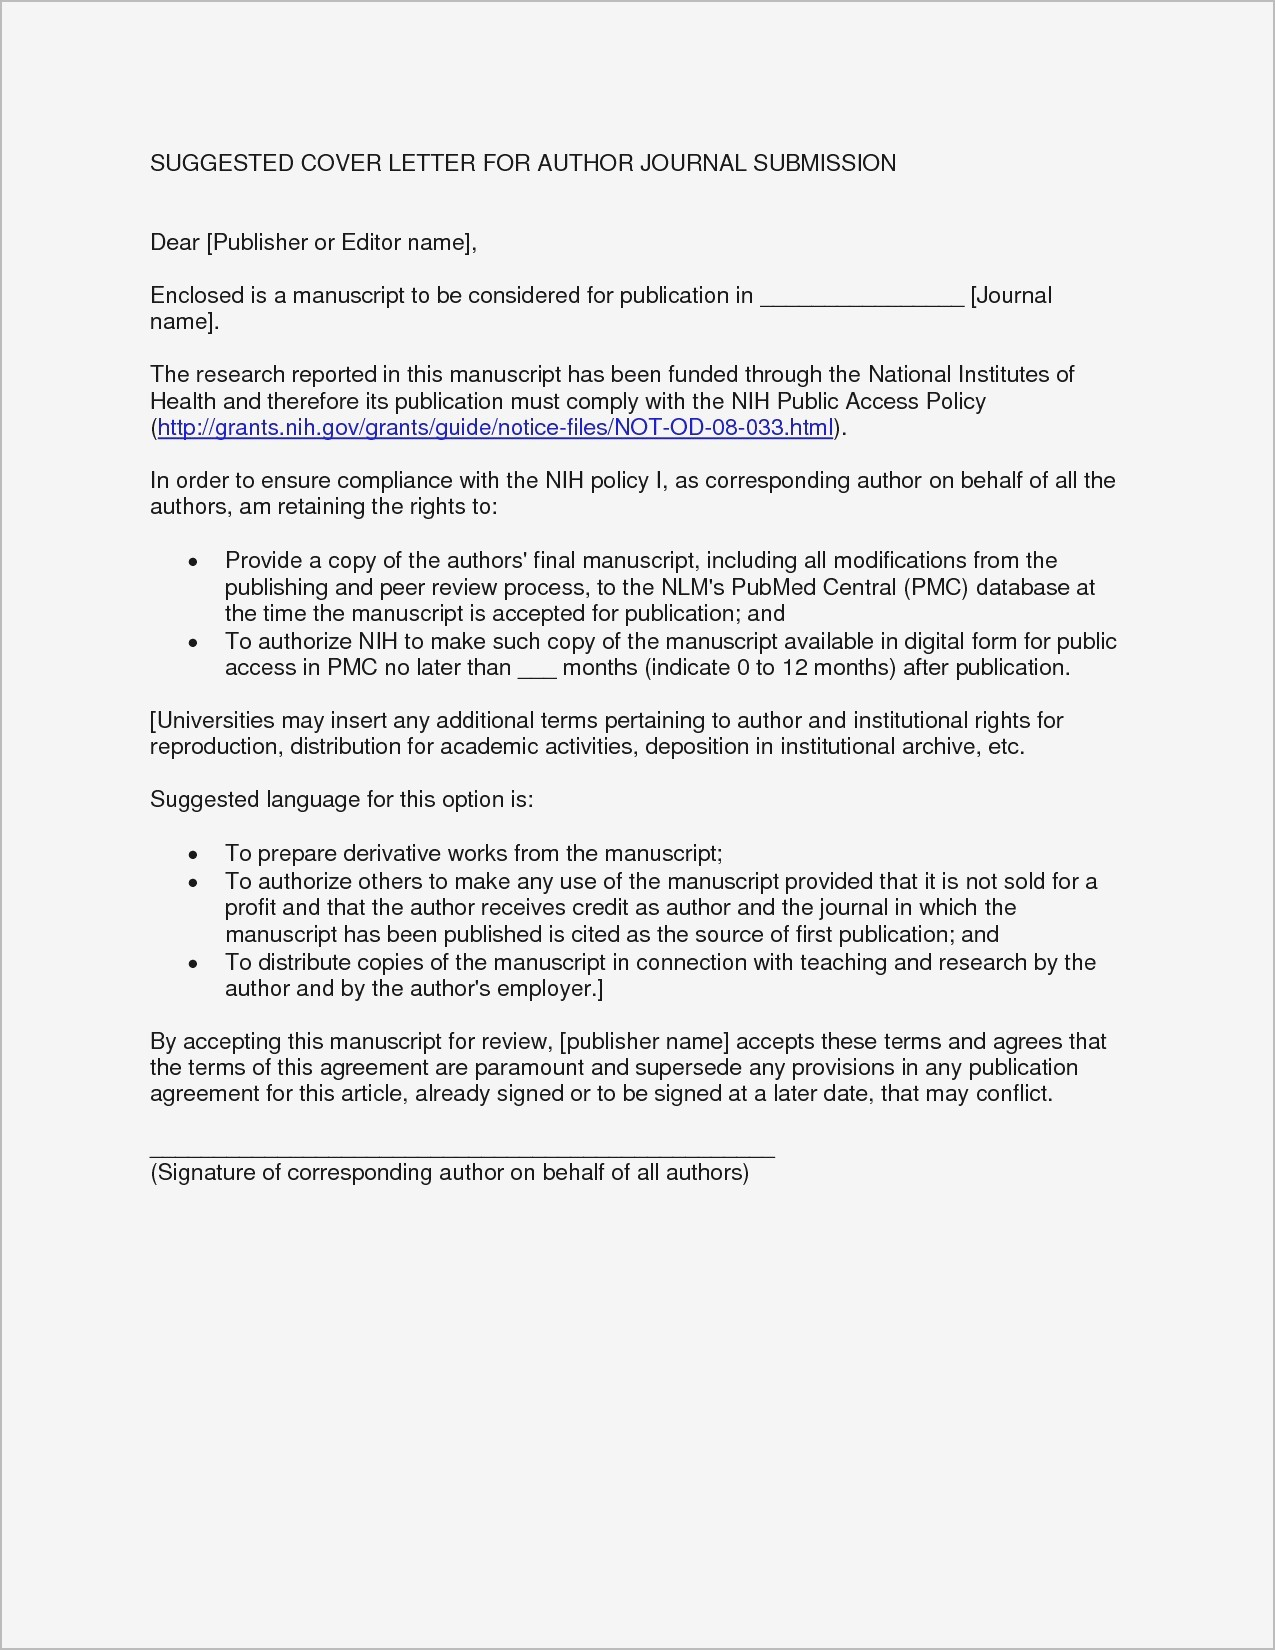 Fax Cover Letter Template Google Docs - Resume Cover Letter Template Google Docs Luxury Fax Cover Letter